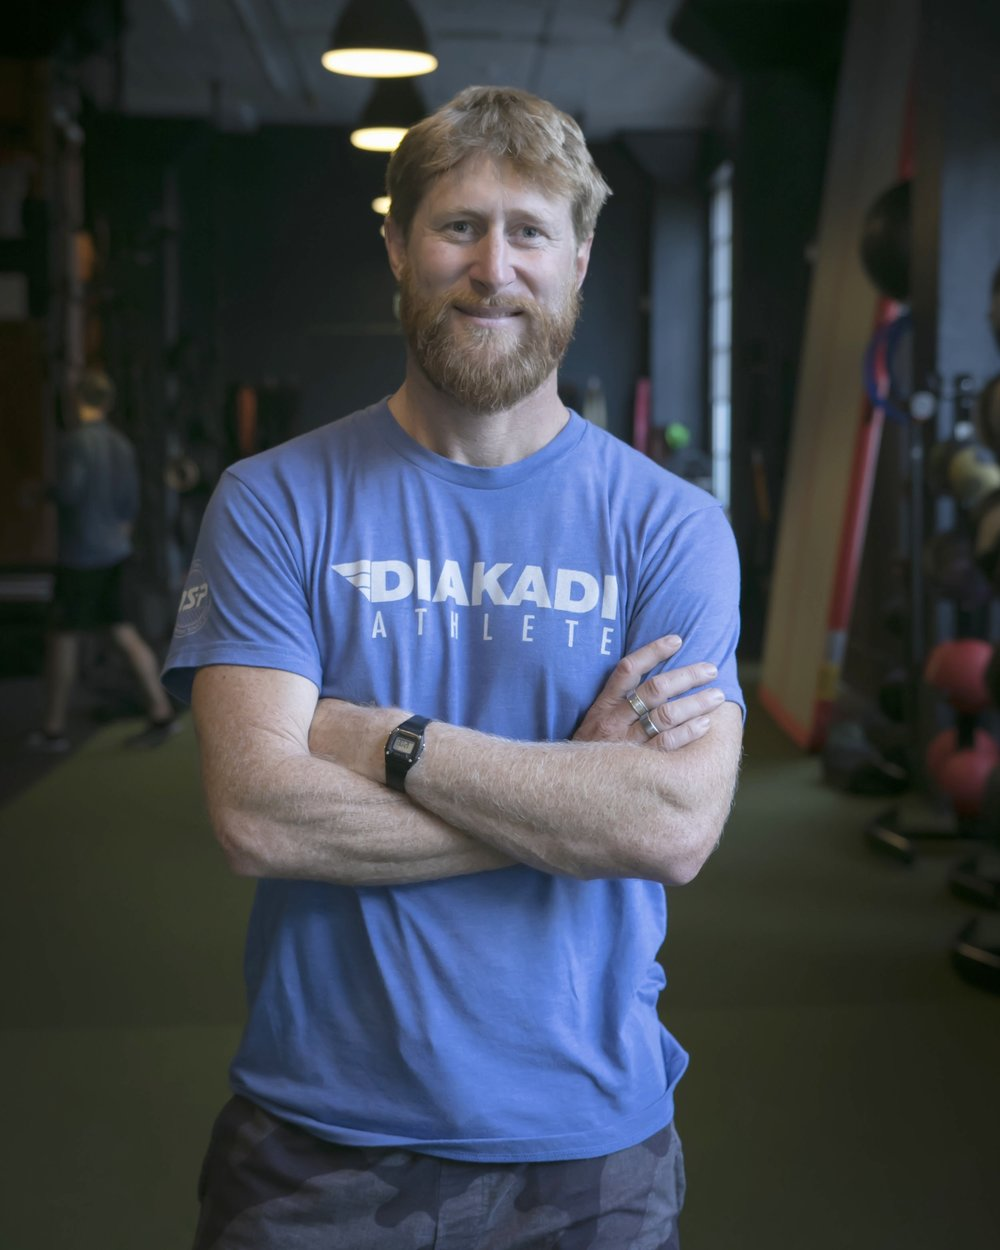 SIMON FATHERS        CLICK FOR BIO Pain Relief and Injury Rehabilitation Movement Based Training Sports Specific Conditioning Life Coaching + Increased Energy Corporate Executive High Performance Management